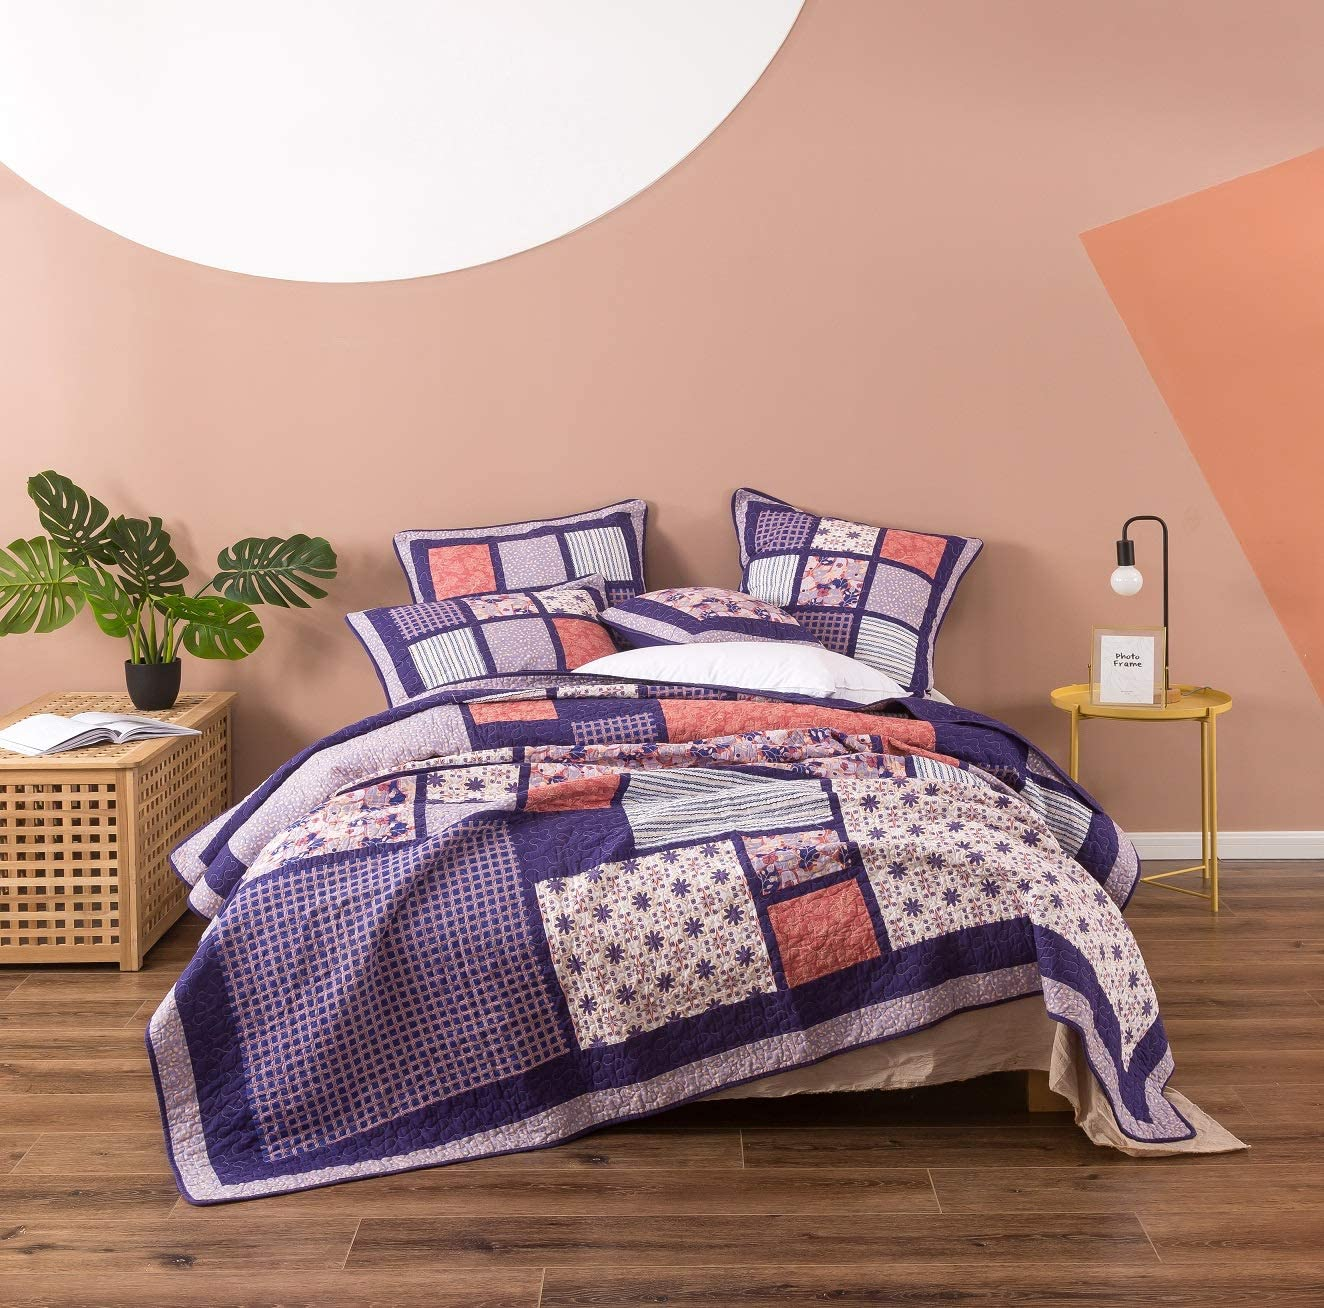 DaDa Bedding Cotton Patchwork Quilt Floral Bedspread - Bohemian Cherry Blossom Quilted Design Coverlet Set - Reversible Bright Vibrant Plum Purple & Peach - Full - 3-Pieces - Designed in USA